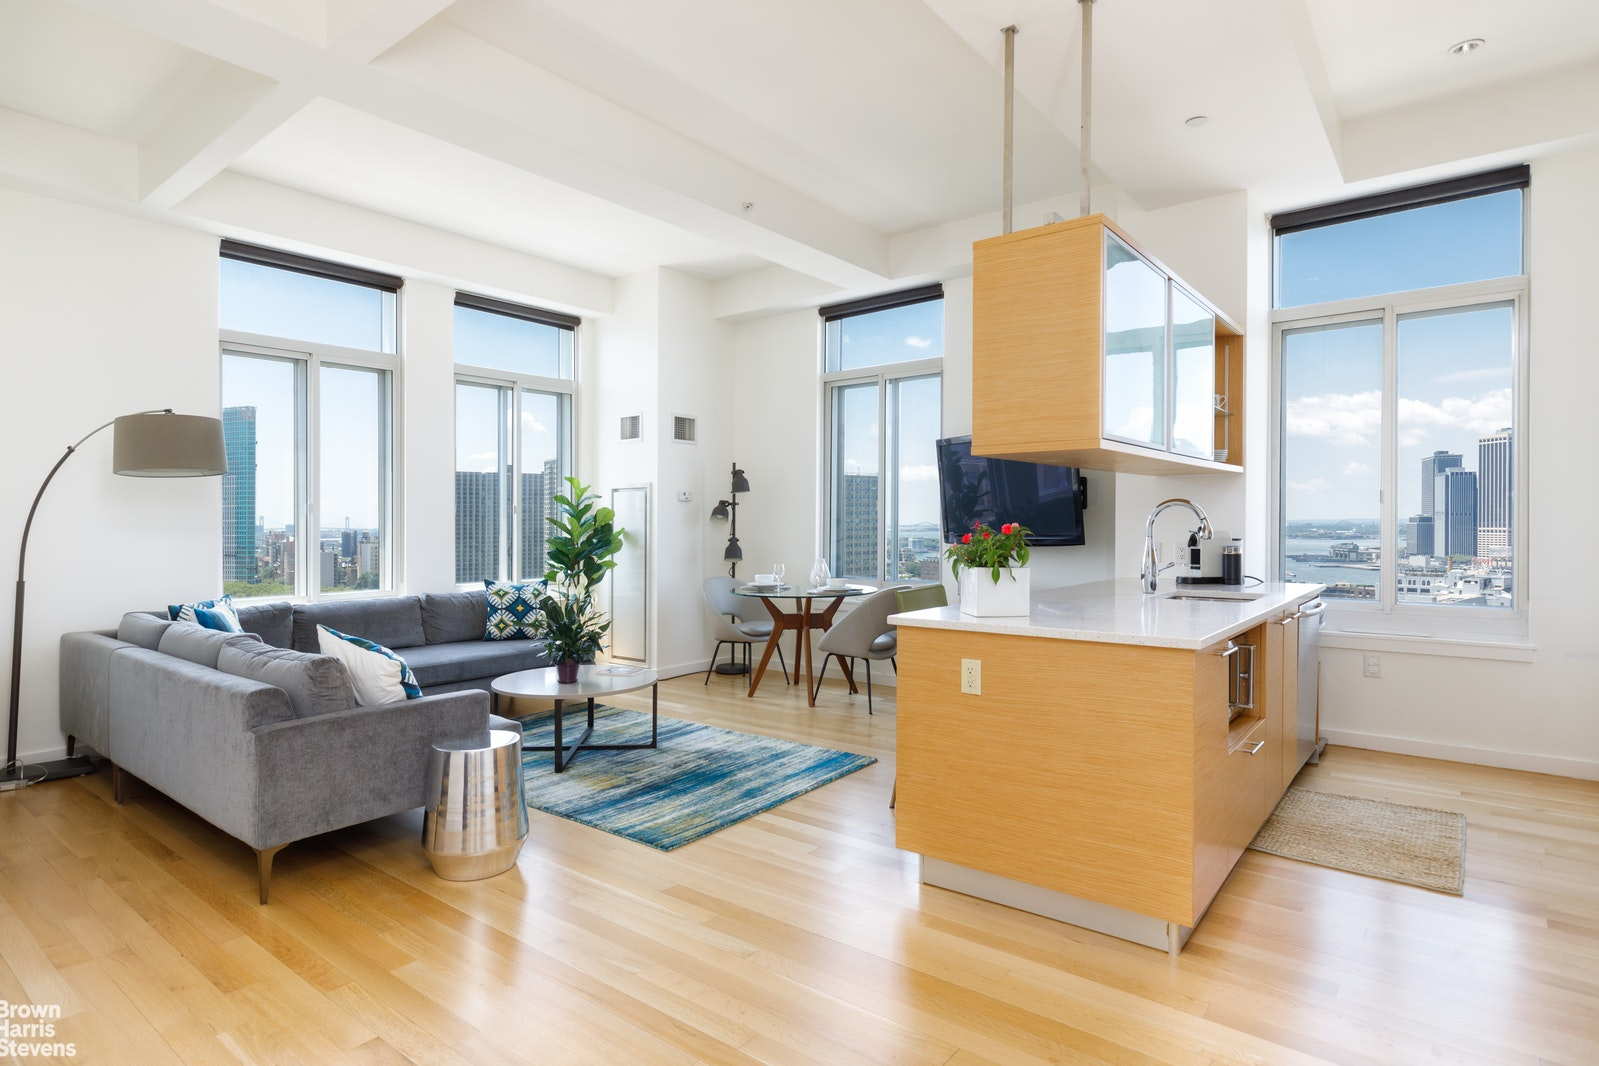 85 Adams Street 19a, Dumbo, Brooklyn, NY, 11201, $1,495,000, Property For Sale, Halstead Real Estate, Photo 1